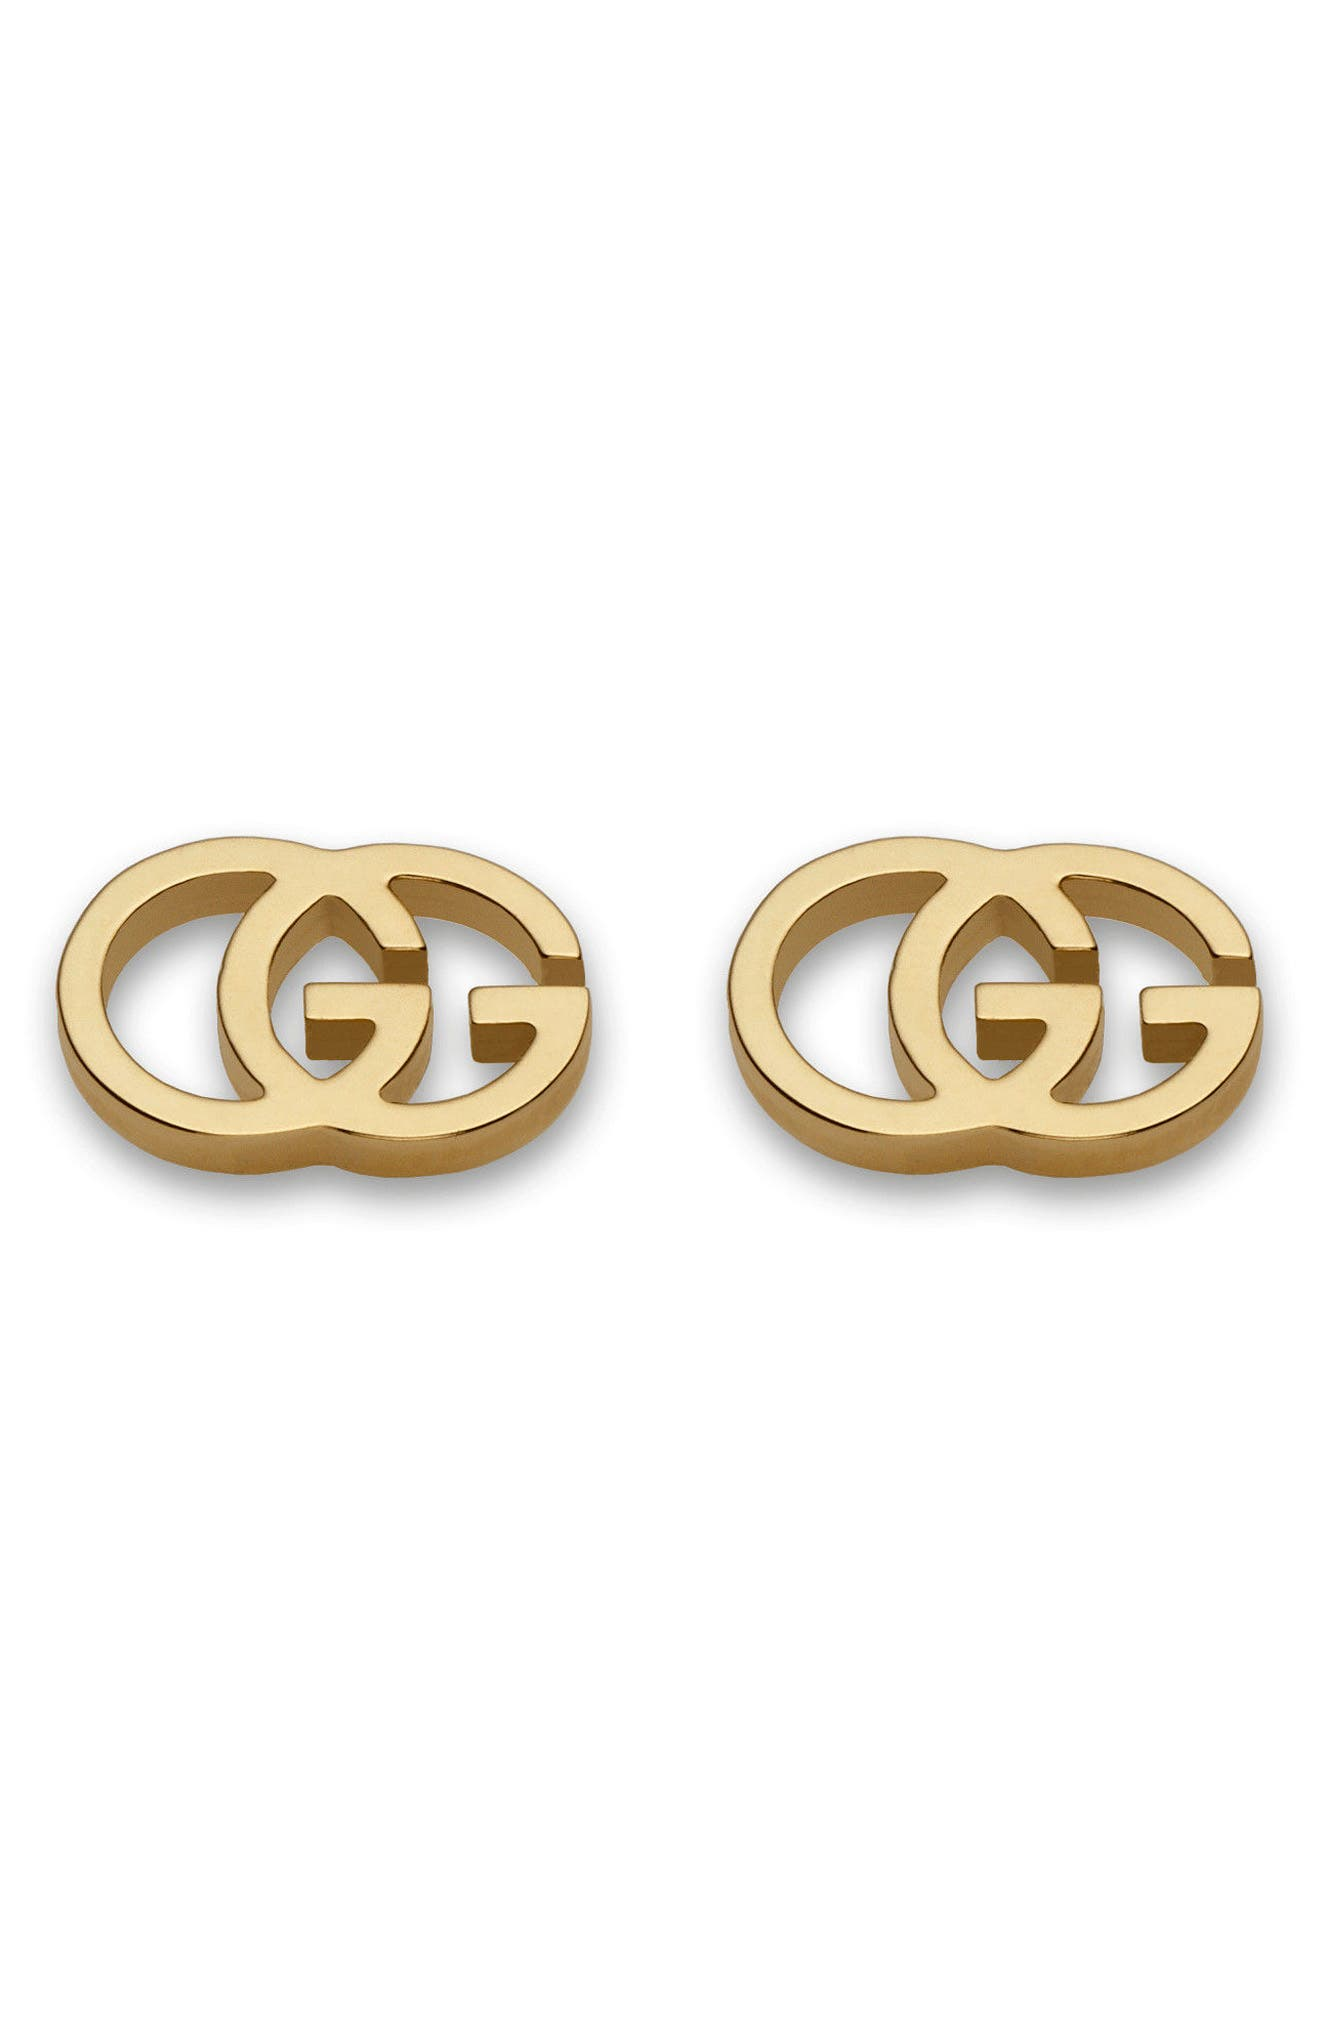 GUCCI, Double-G Stud Earrings, Main thumbnail 1, color, YELLOW GOLD